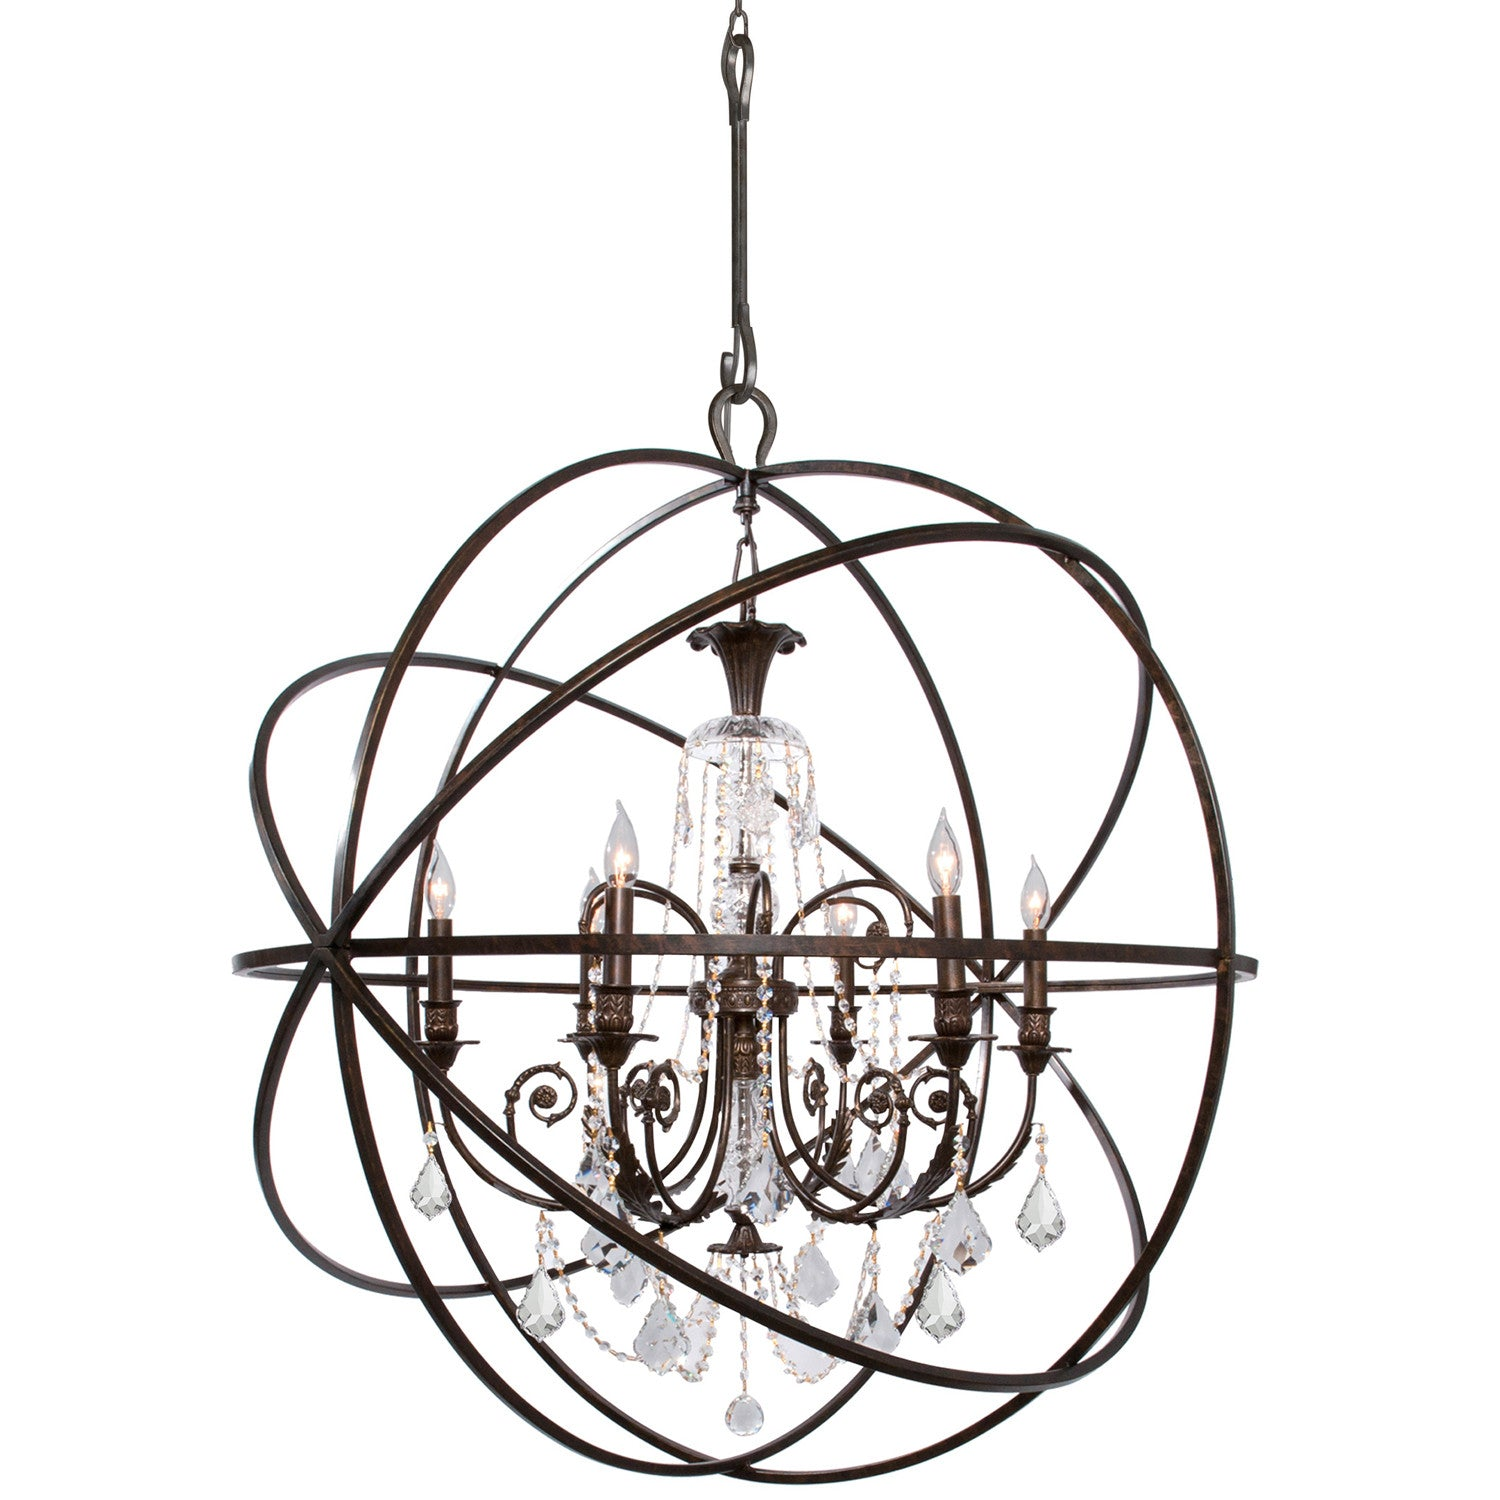 6 Light English Bronze Industrial Chandelier Draped In Clear Hand Cut Crystal - C193-9219-EB-CL-MWP